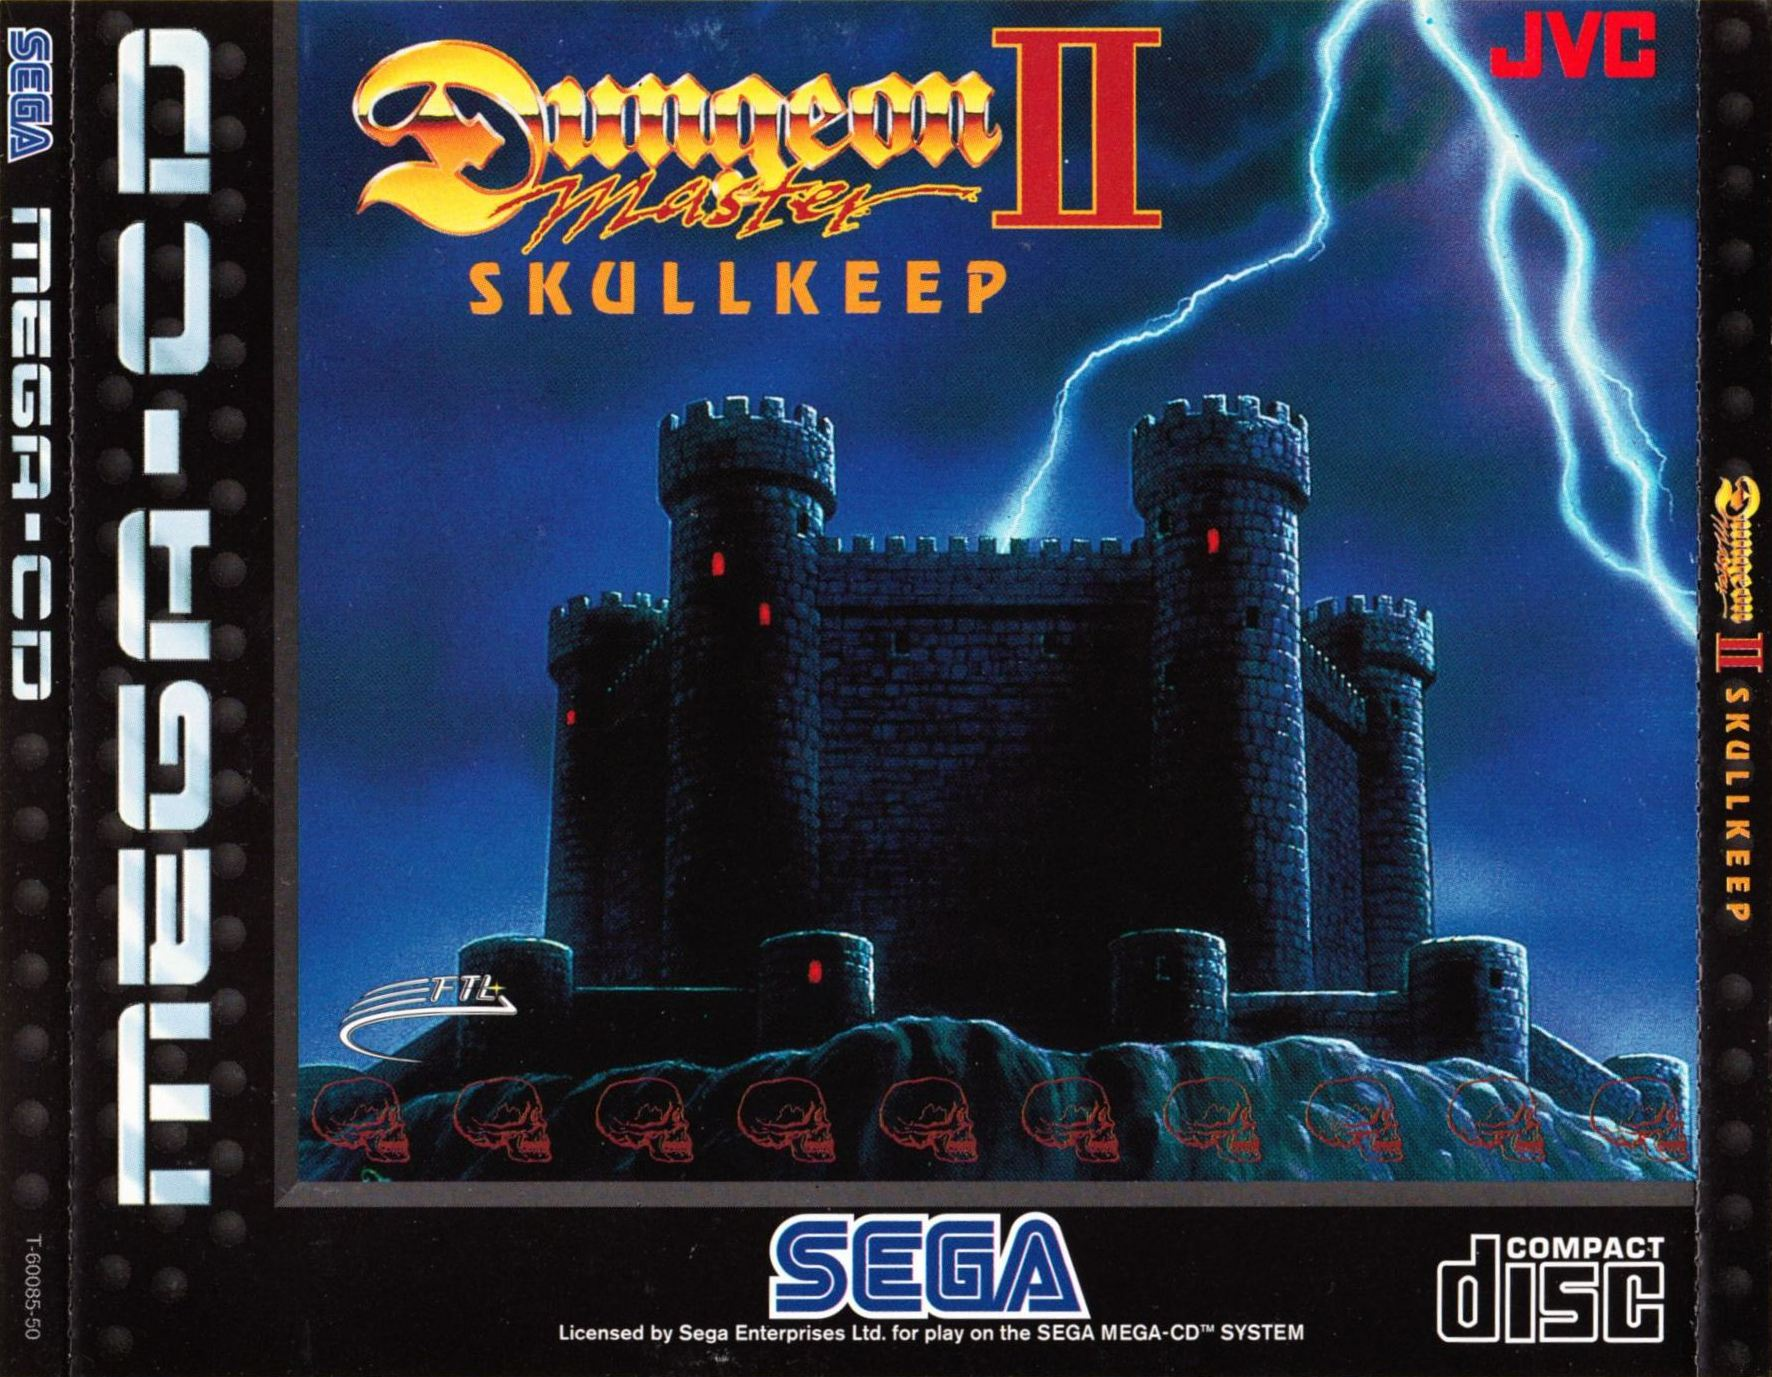 Game - Dungeon Master II - EU - Mega CD - Front Card - Front - Scan